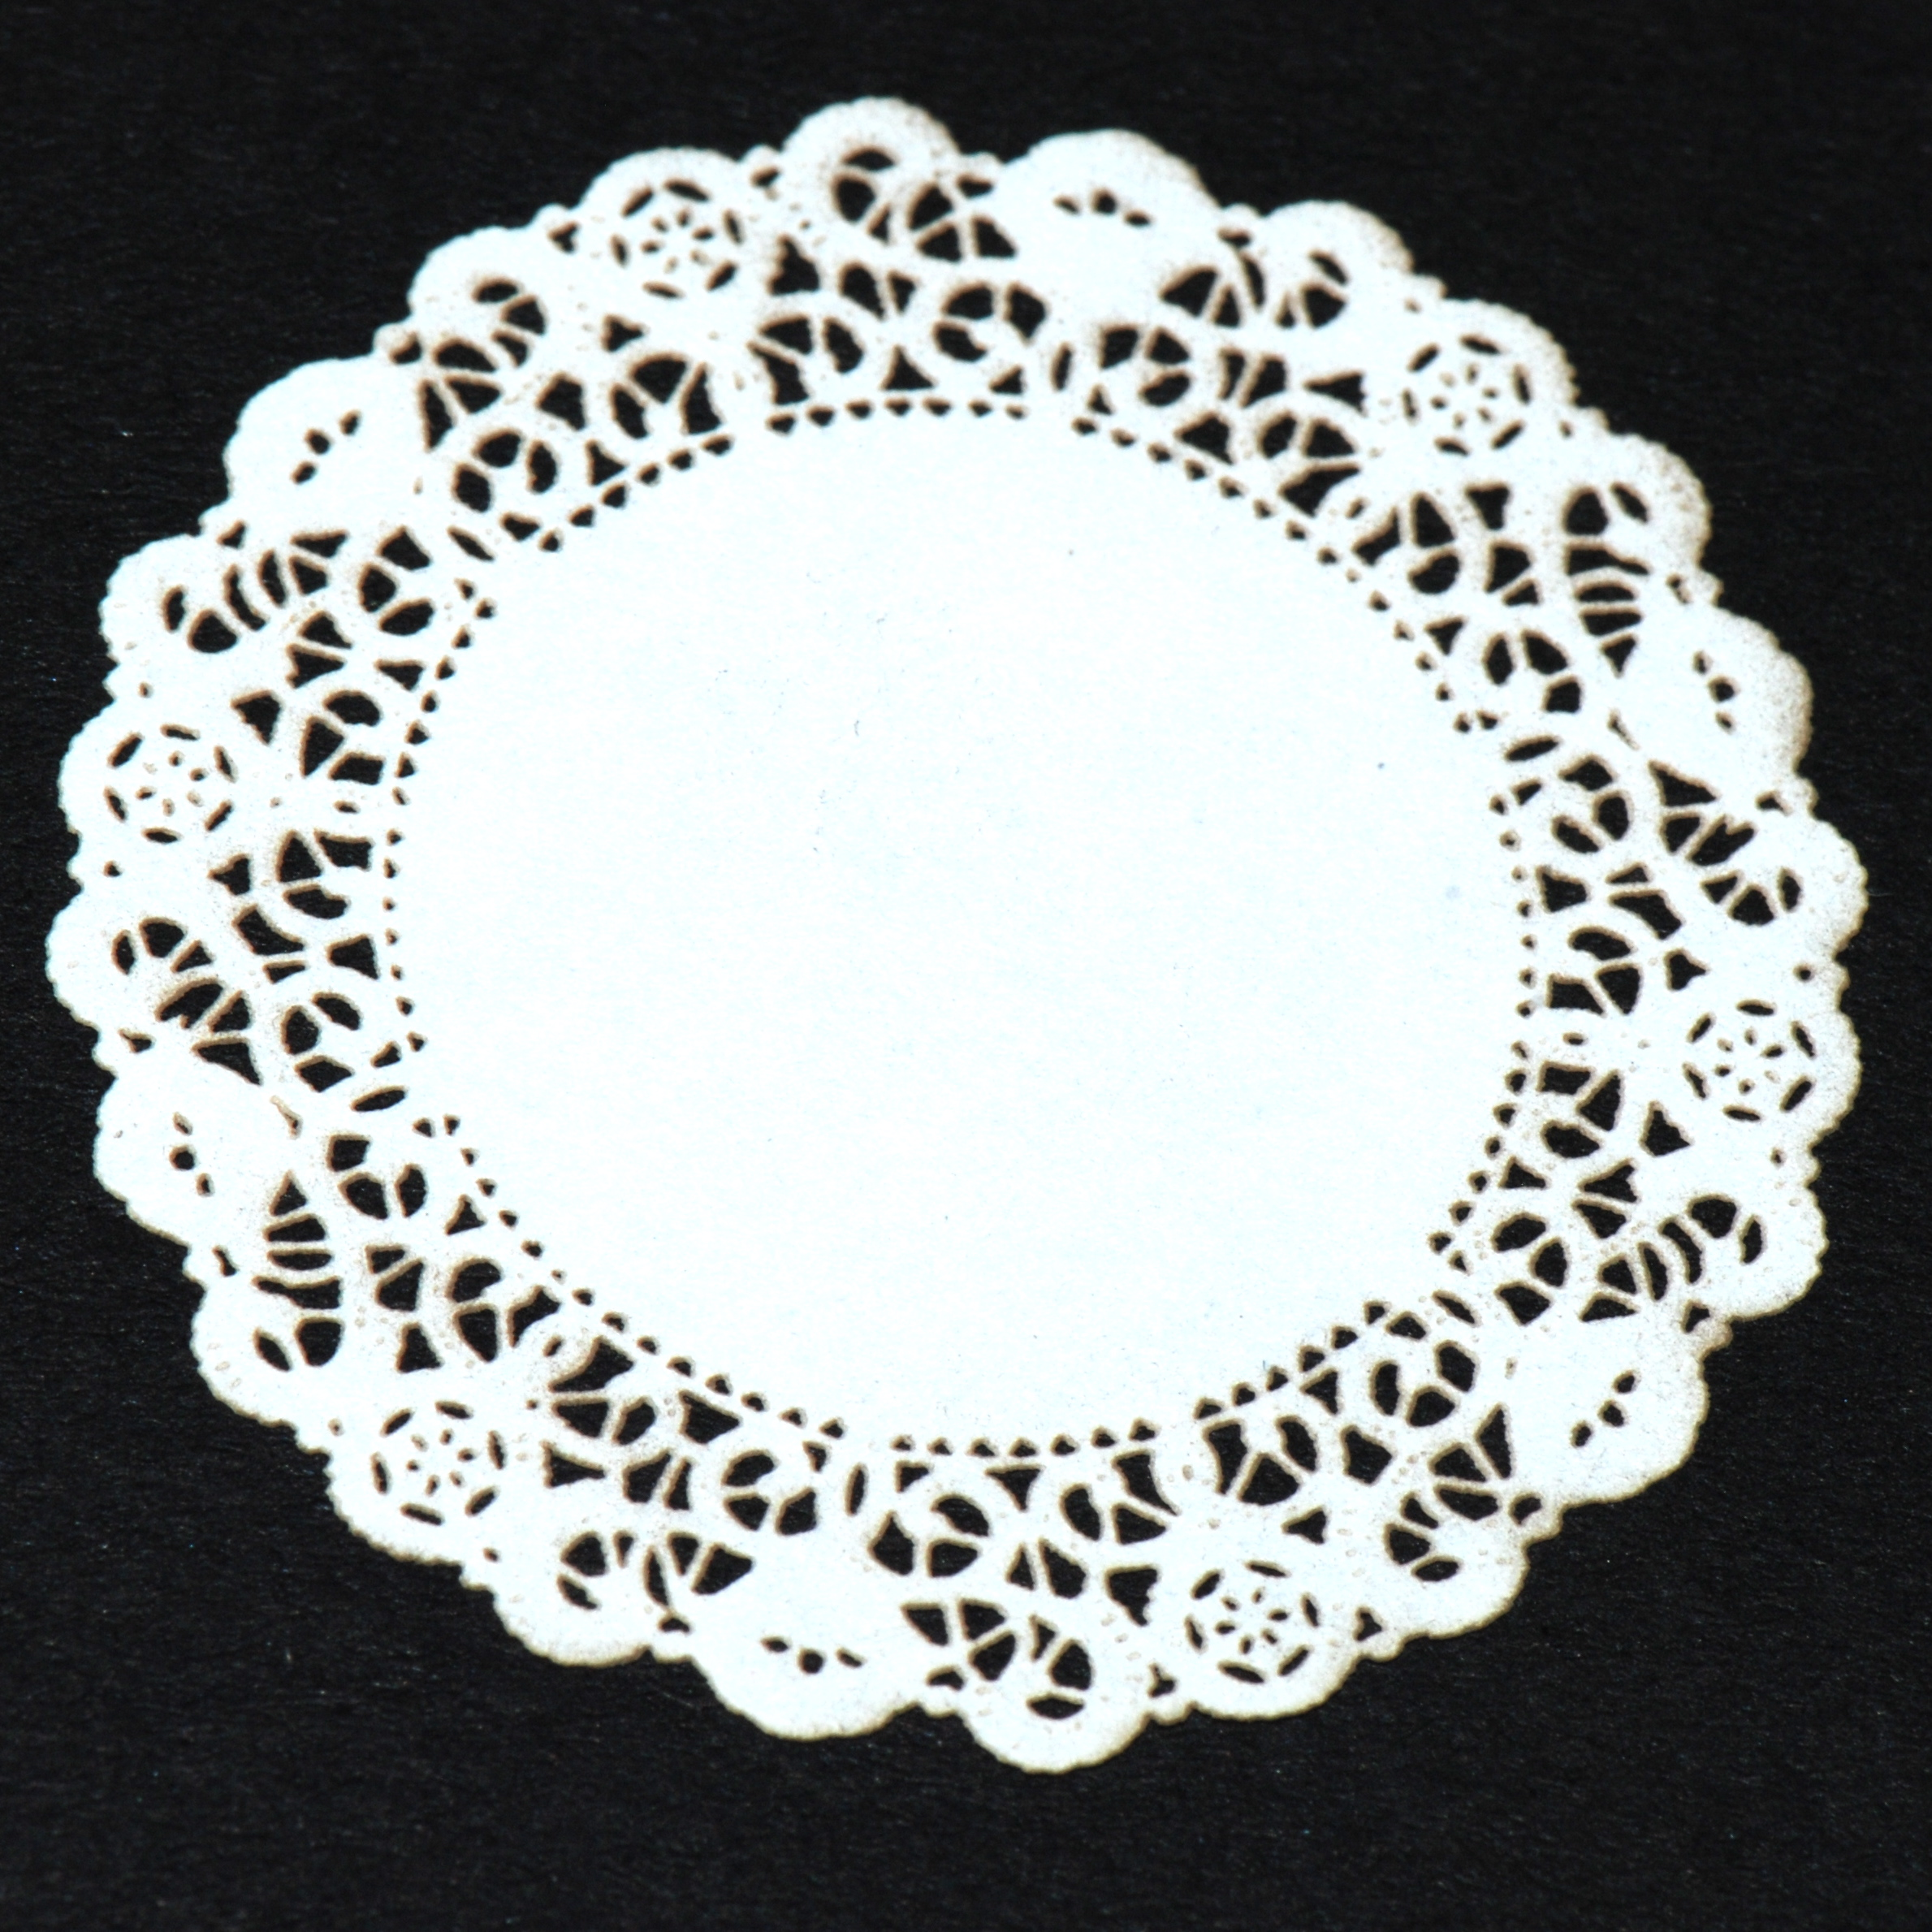 At Home Decor Large White Lace Doily 23 Stewart Dollhouse Creations